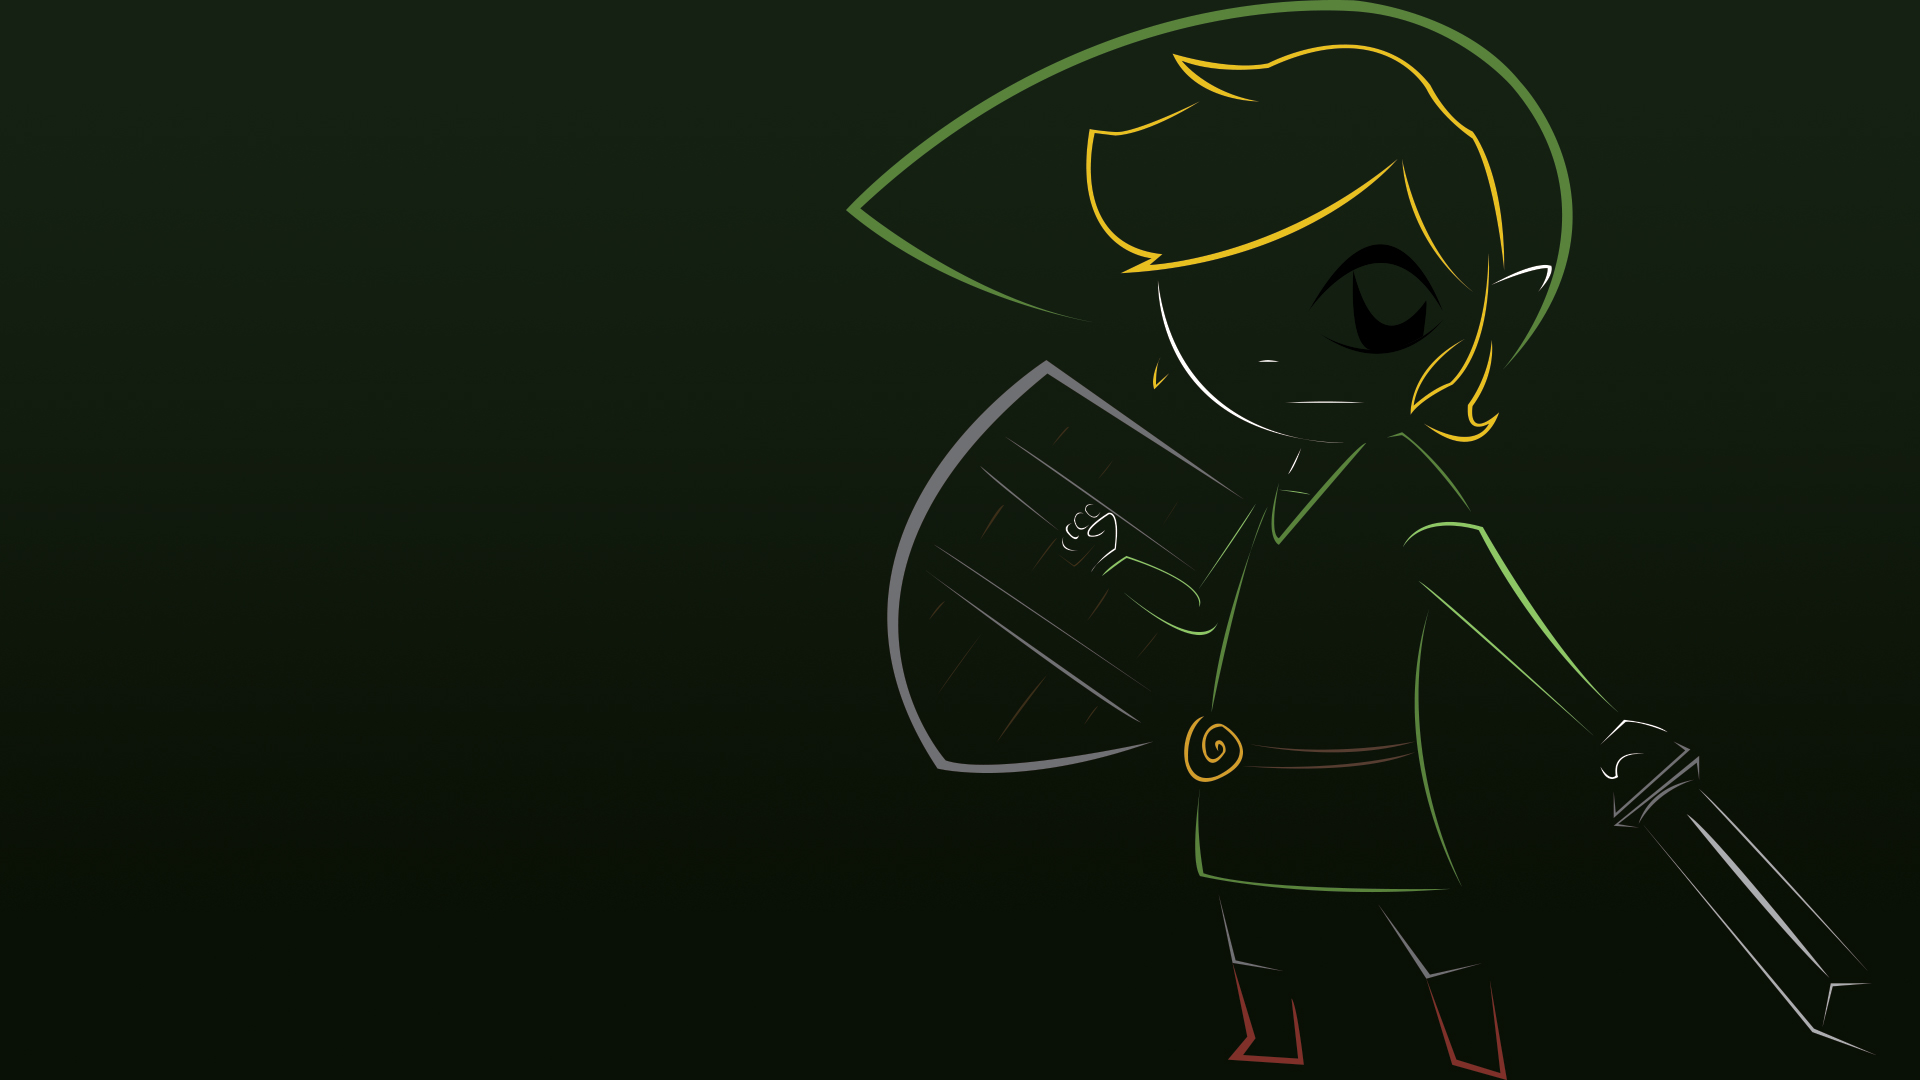 Zelda Wallpapers HD Wallpaper  1920x1080